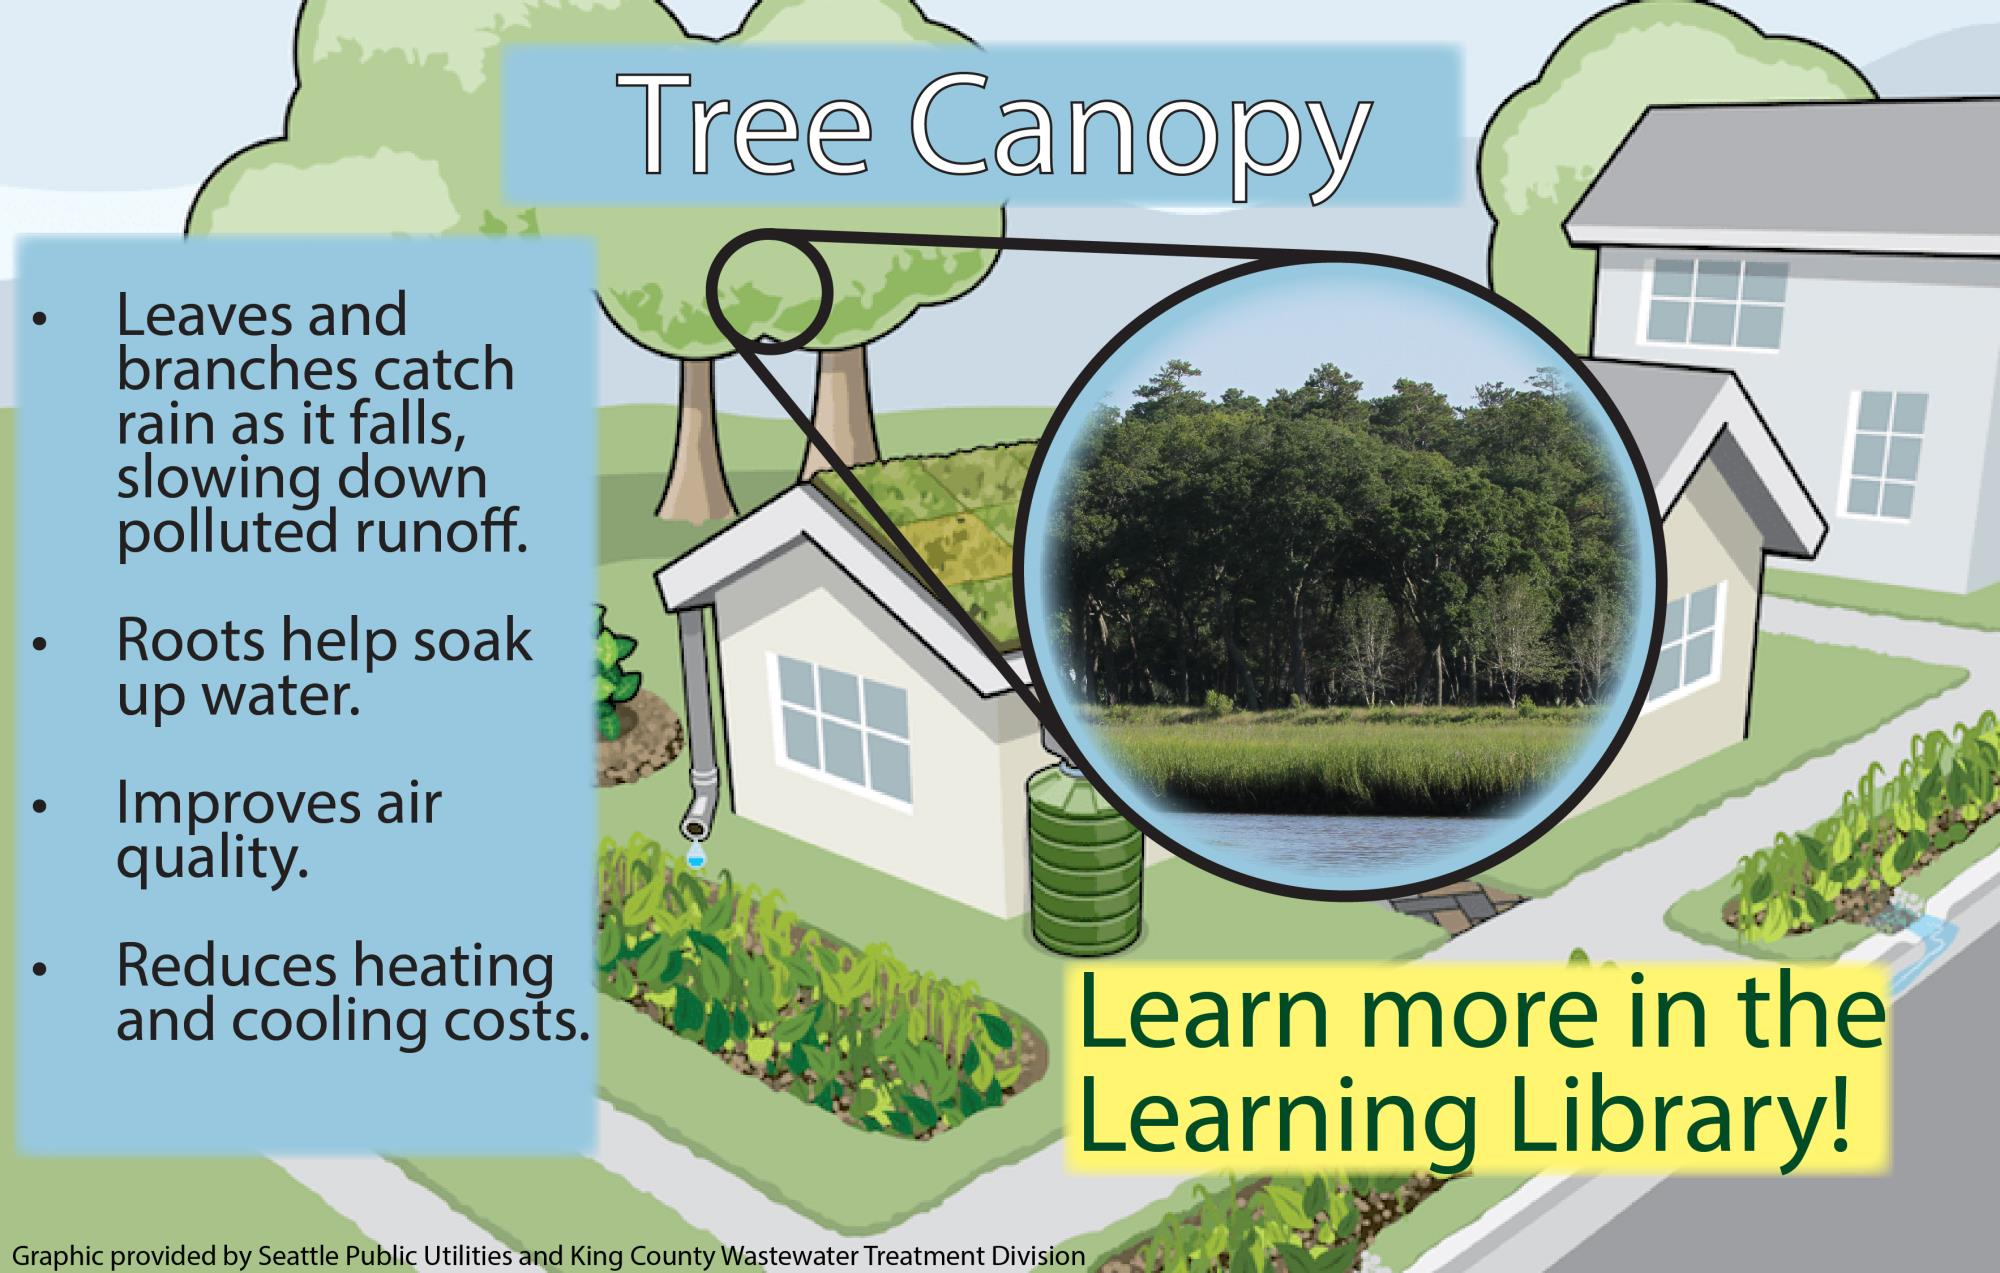 Tree Canopy Benefits Infographic